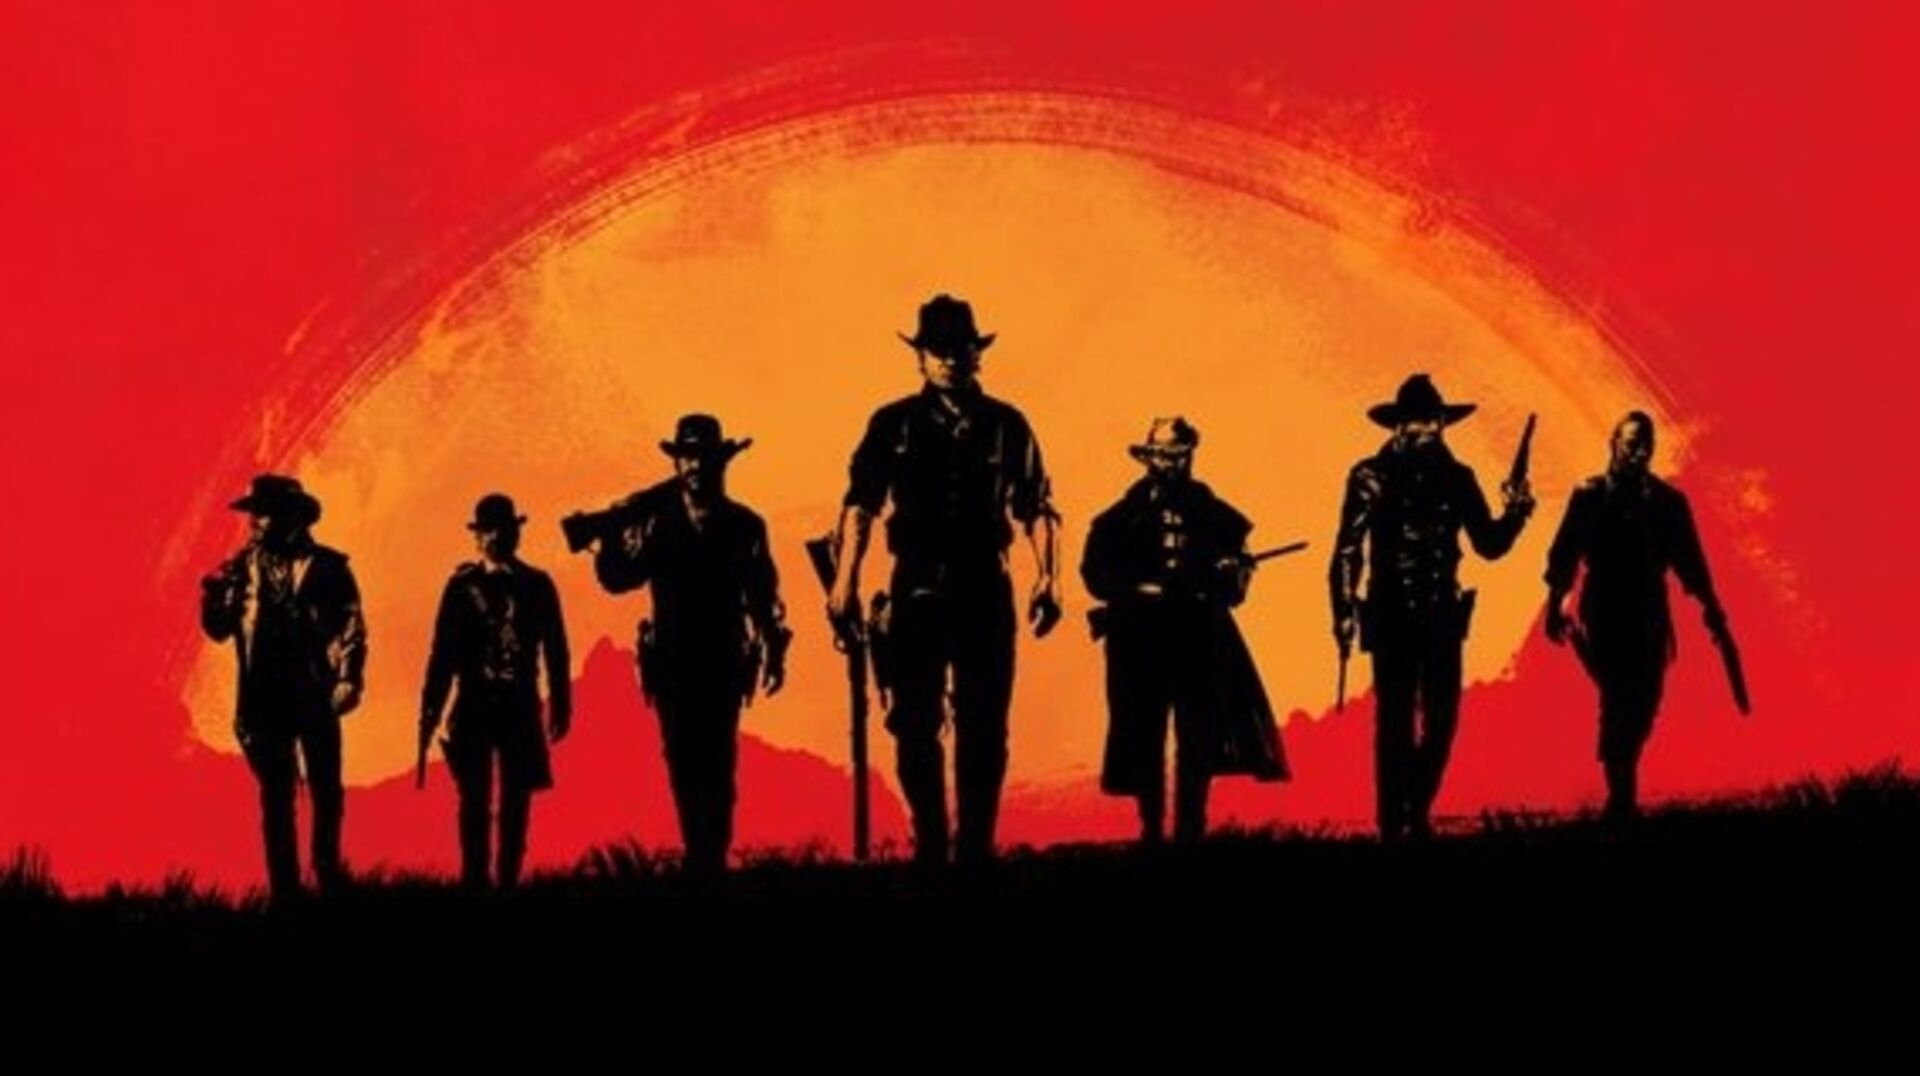 Rockstar attempts to defuse 100-hour work week controversy amid